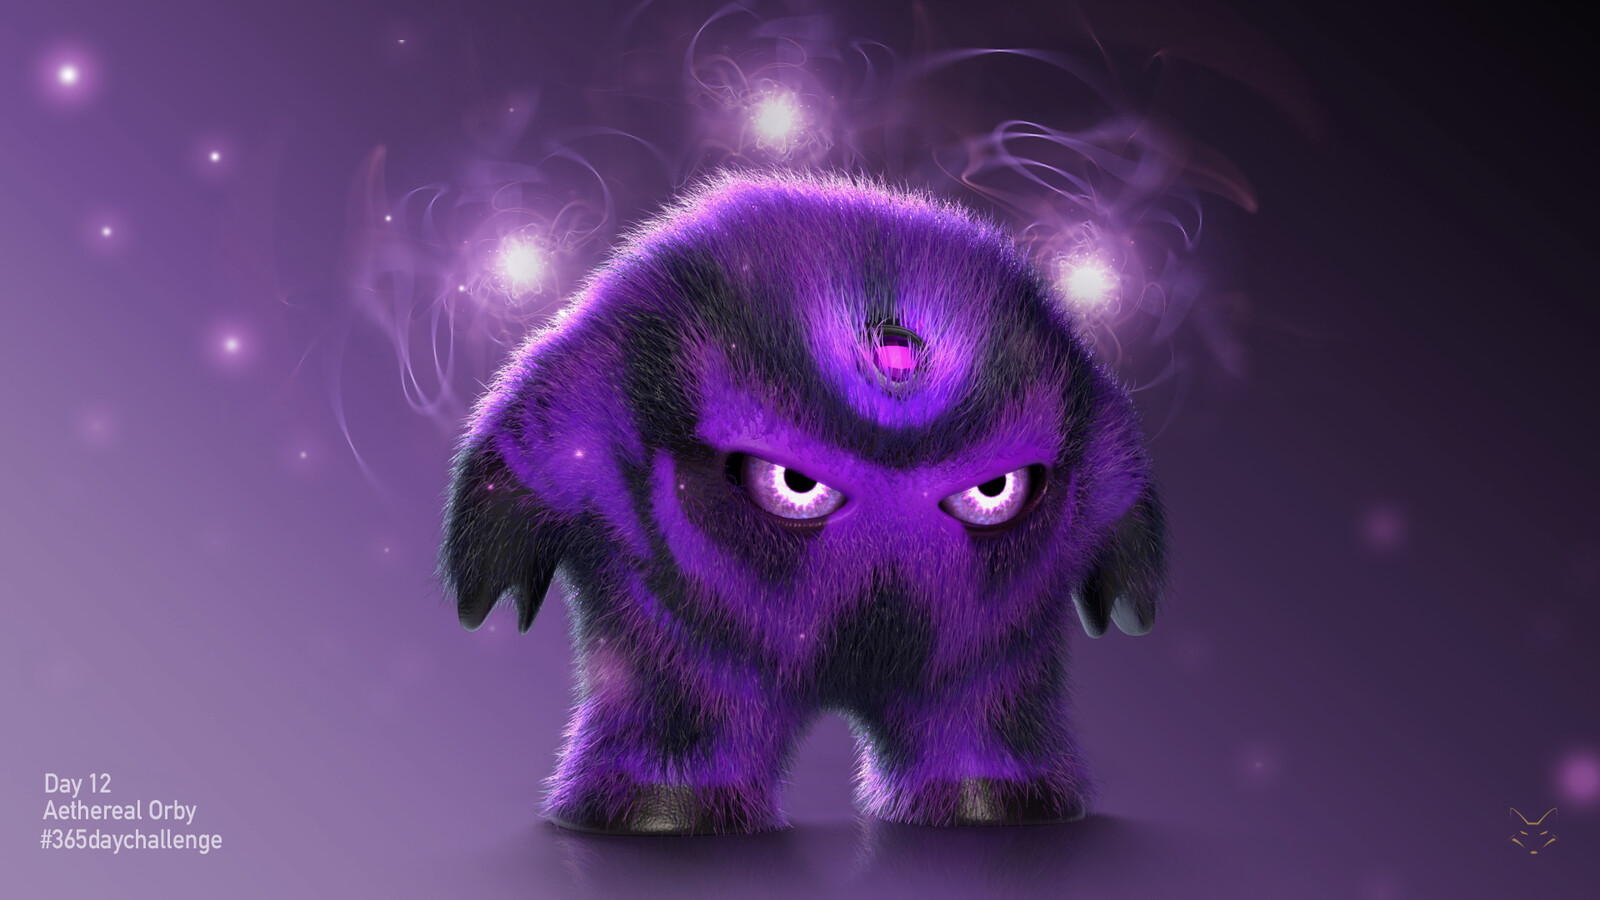 Aethereal Orby